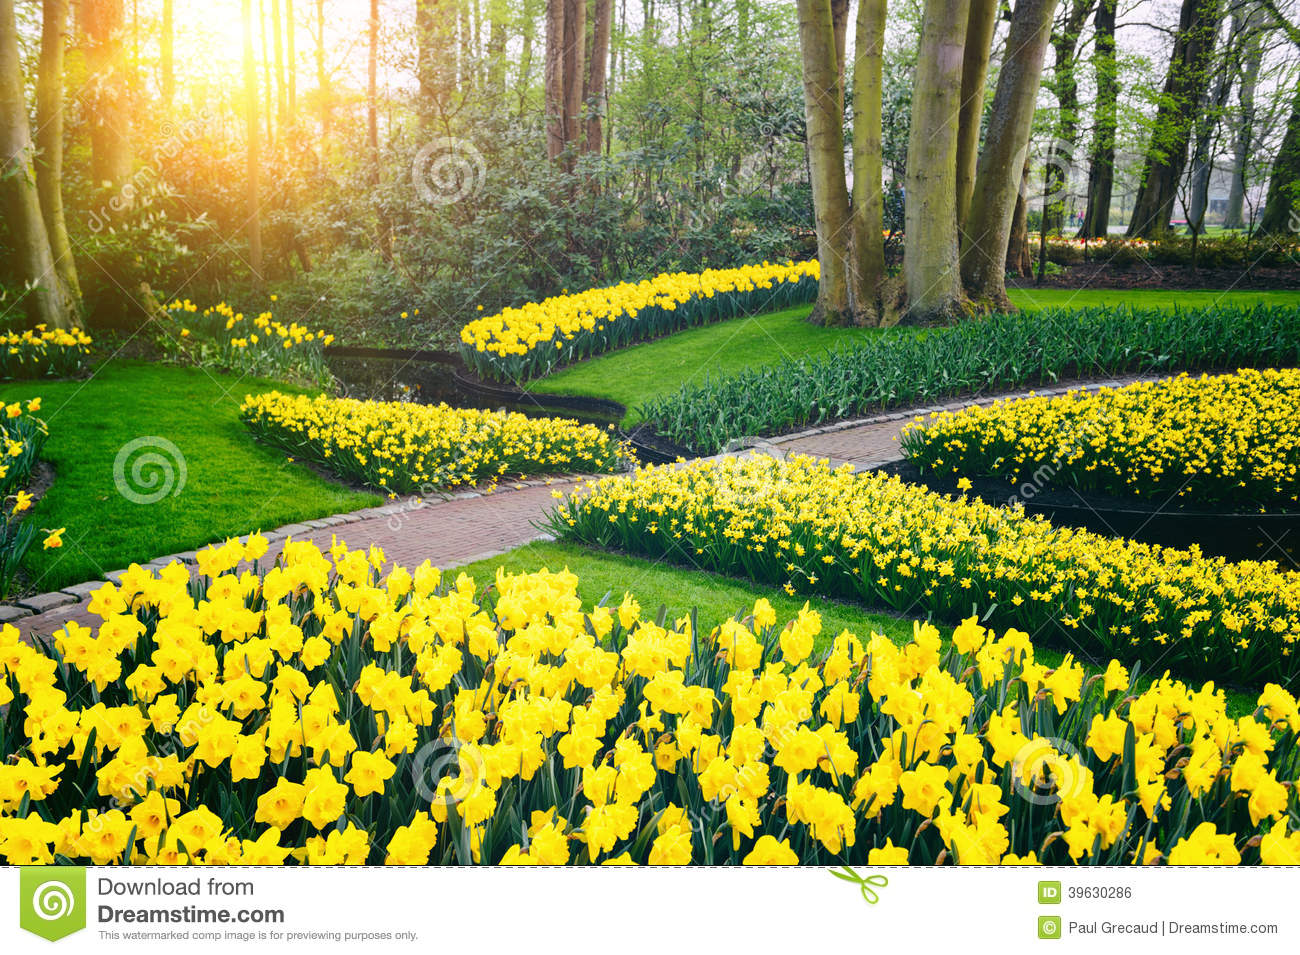 Superb Spring Landscape With Yellow Daffodils. Keukenhof Garden Stock Photo    Image Of Growth, Daffodil: 39630286